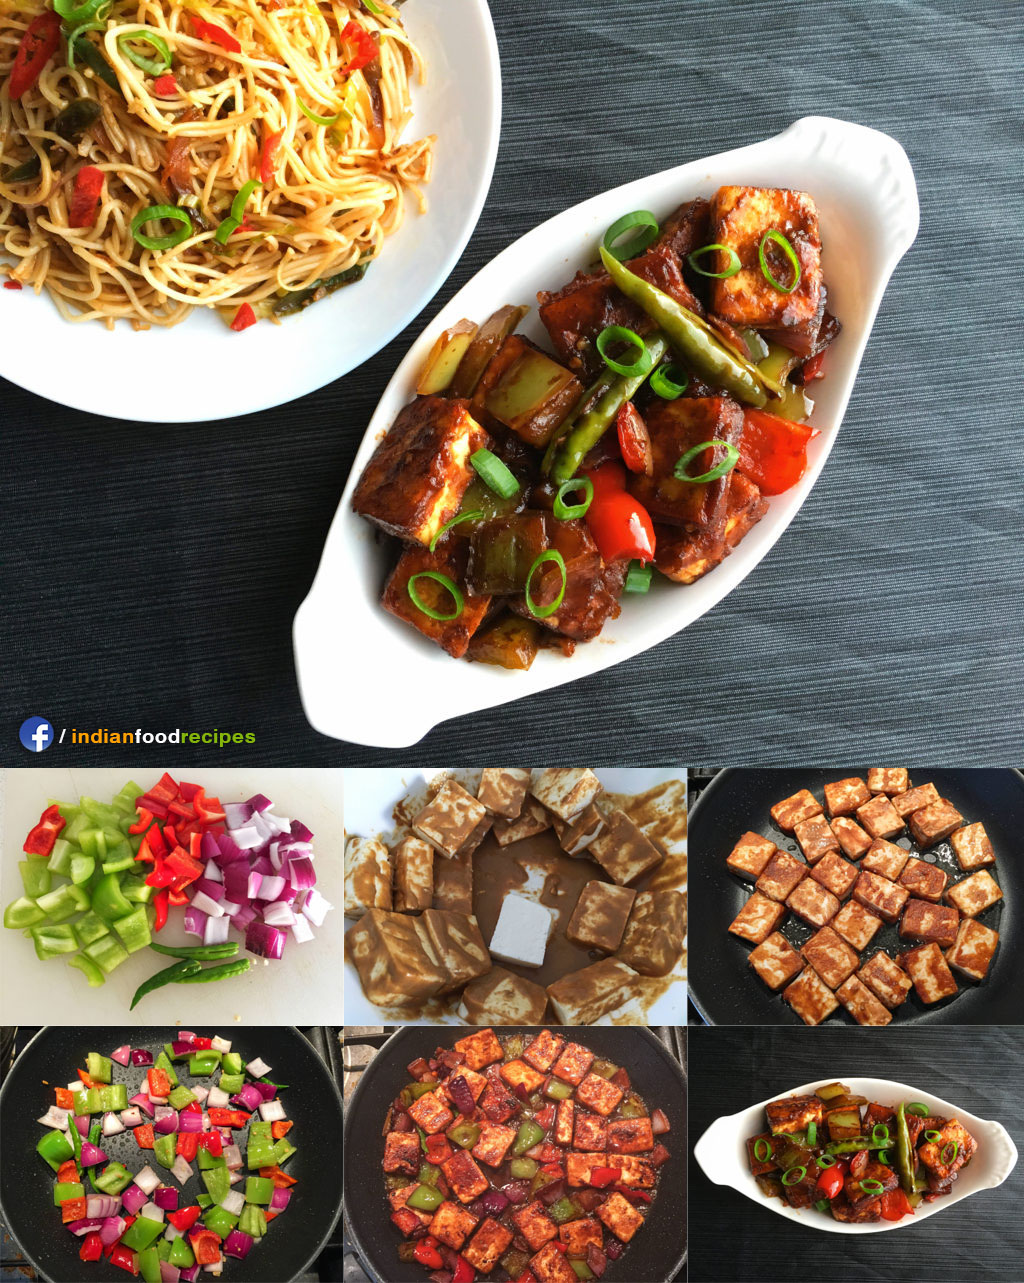 Hot and spicy chilli paneer recipe step by step indian food recipes hot and spicy chilli paneer recipe step by step forumfinder Image collections